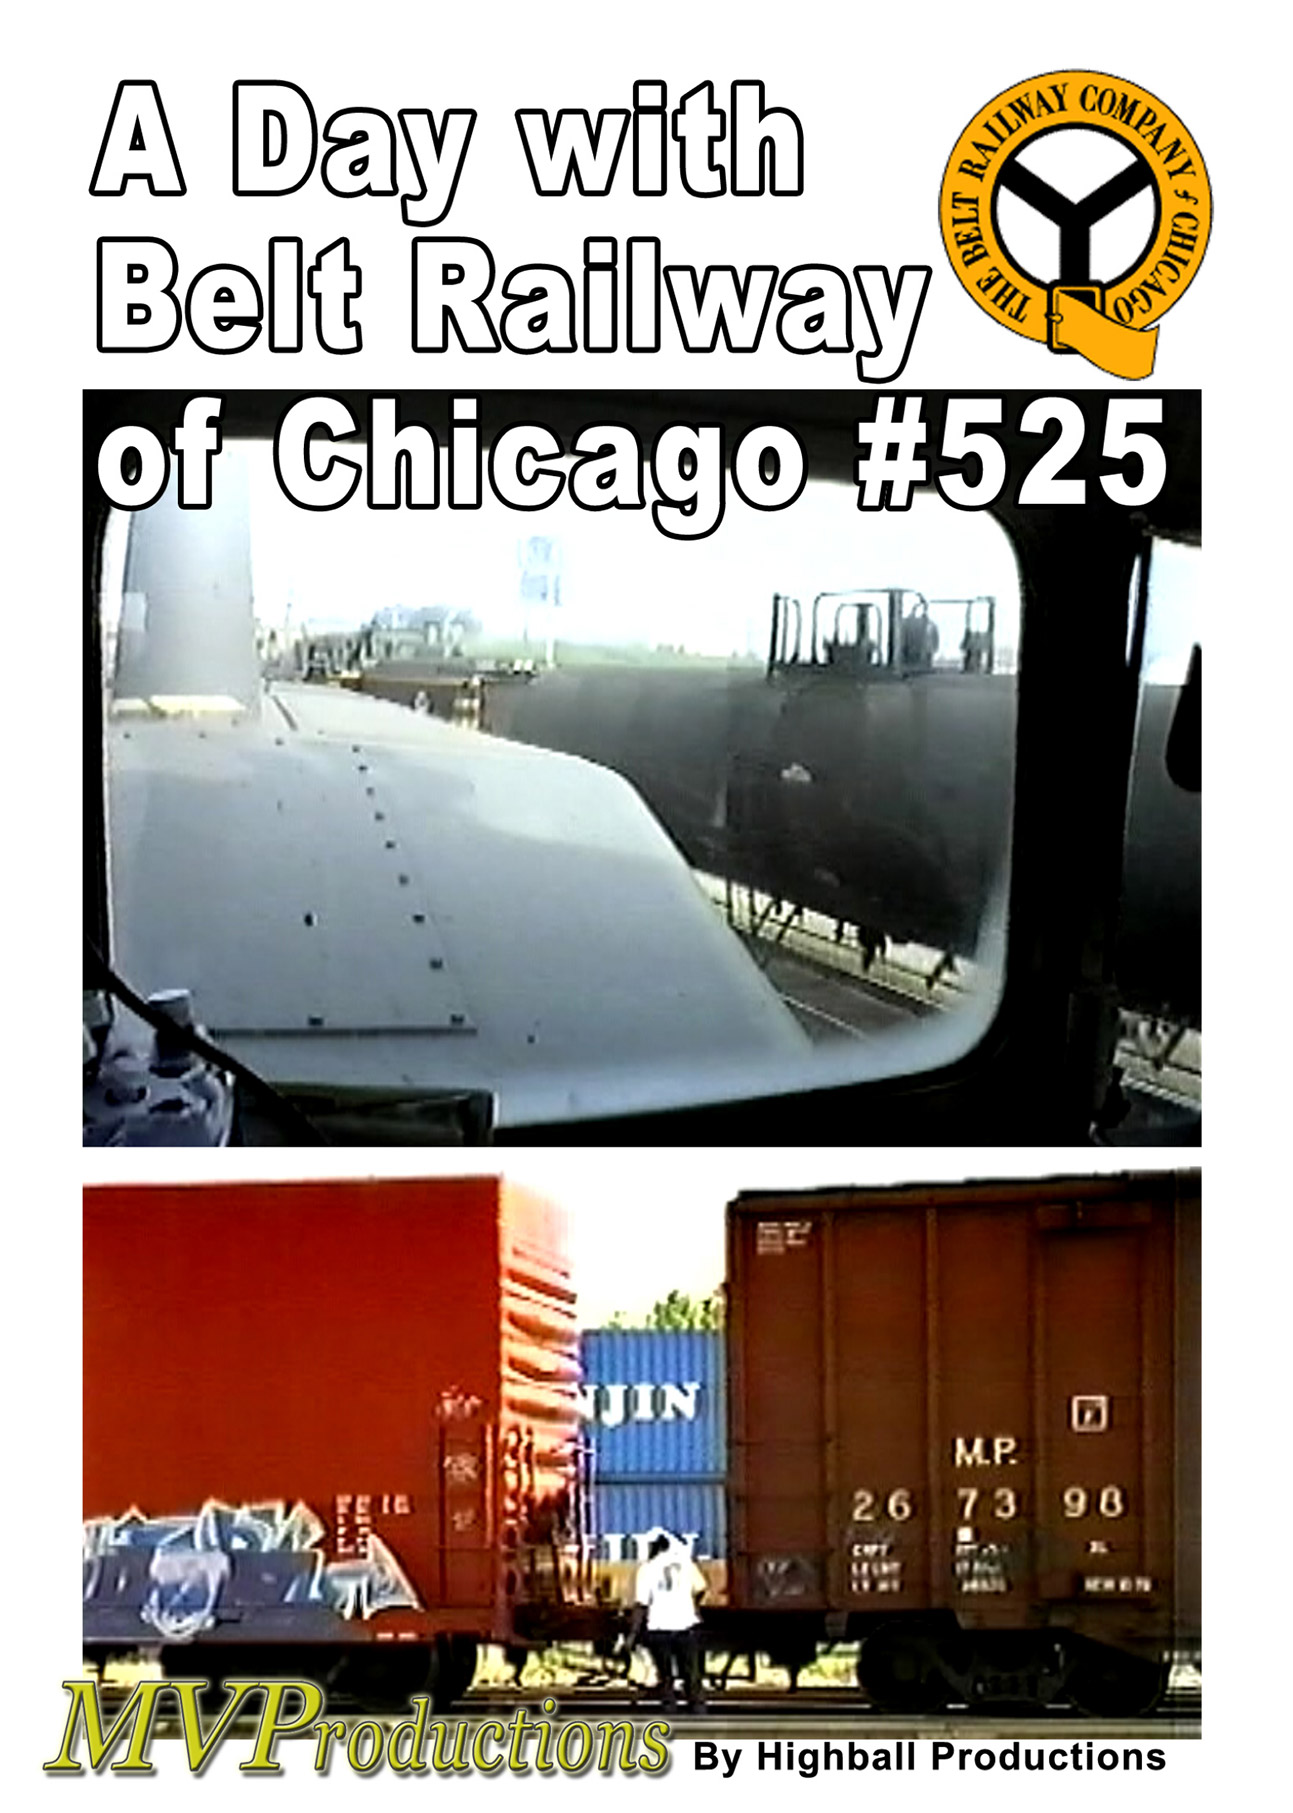 A Day with Belt Railway of Chicago #525 Midwest Video Productions MV525 601577879930